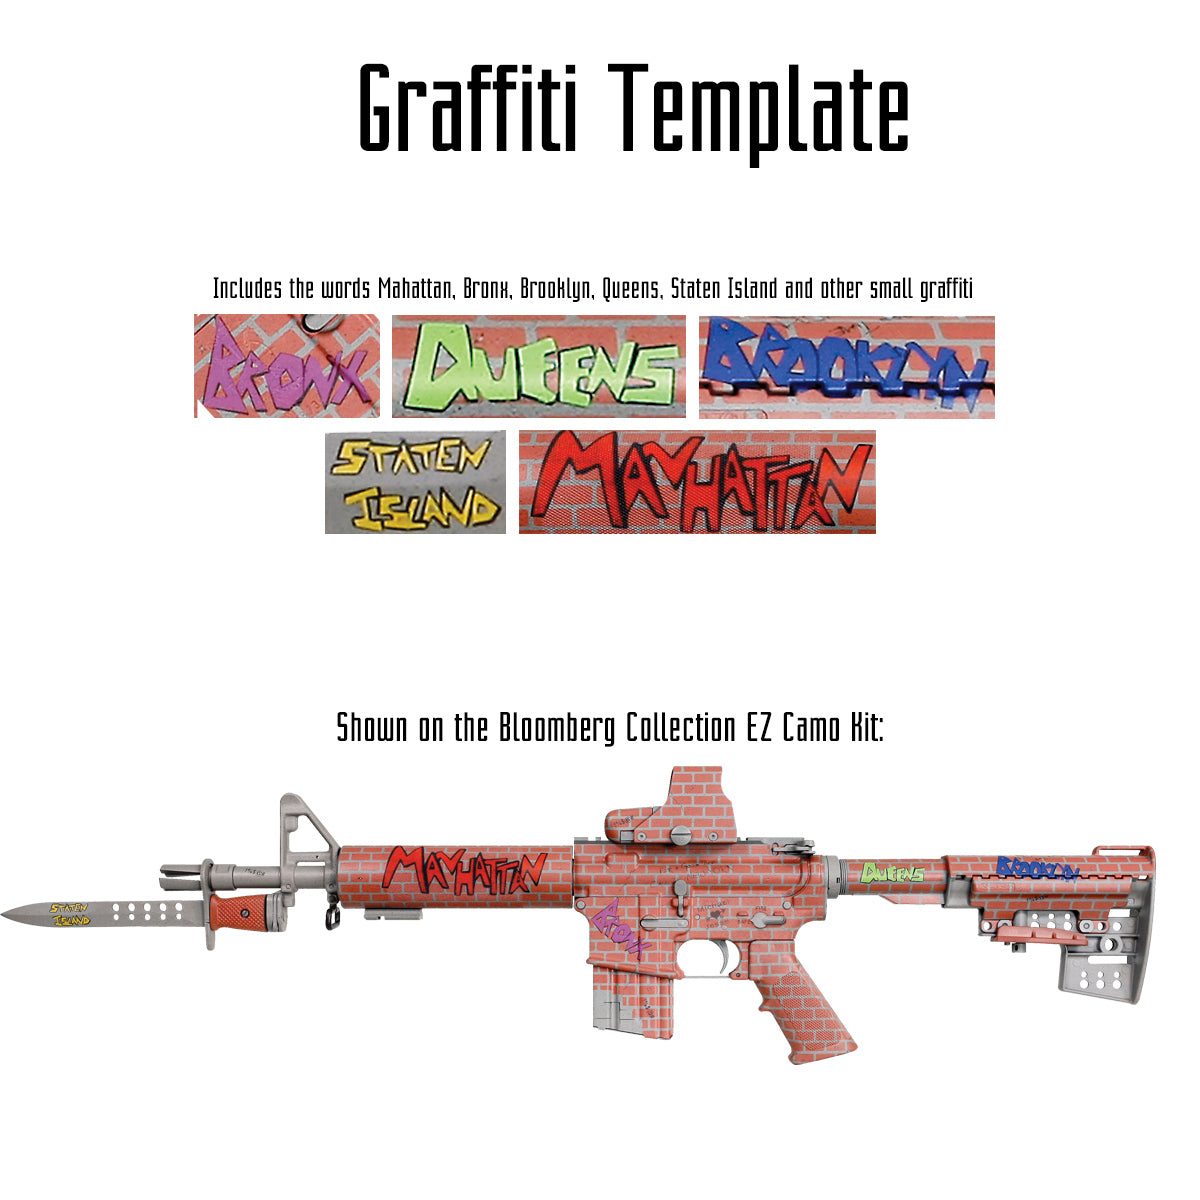 Graffiti Template